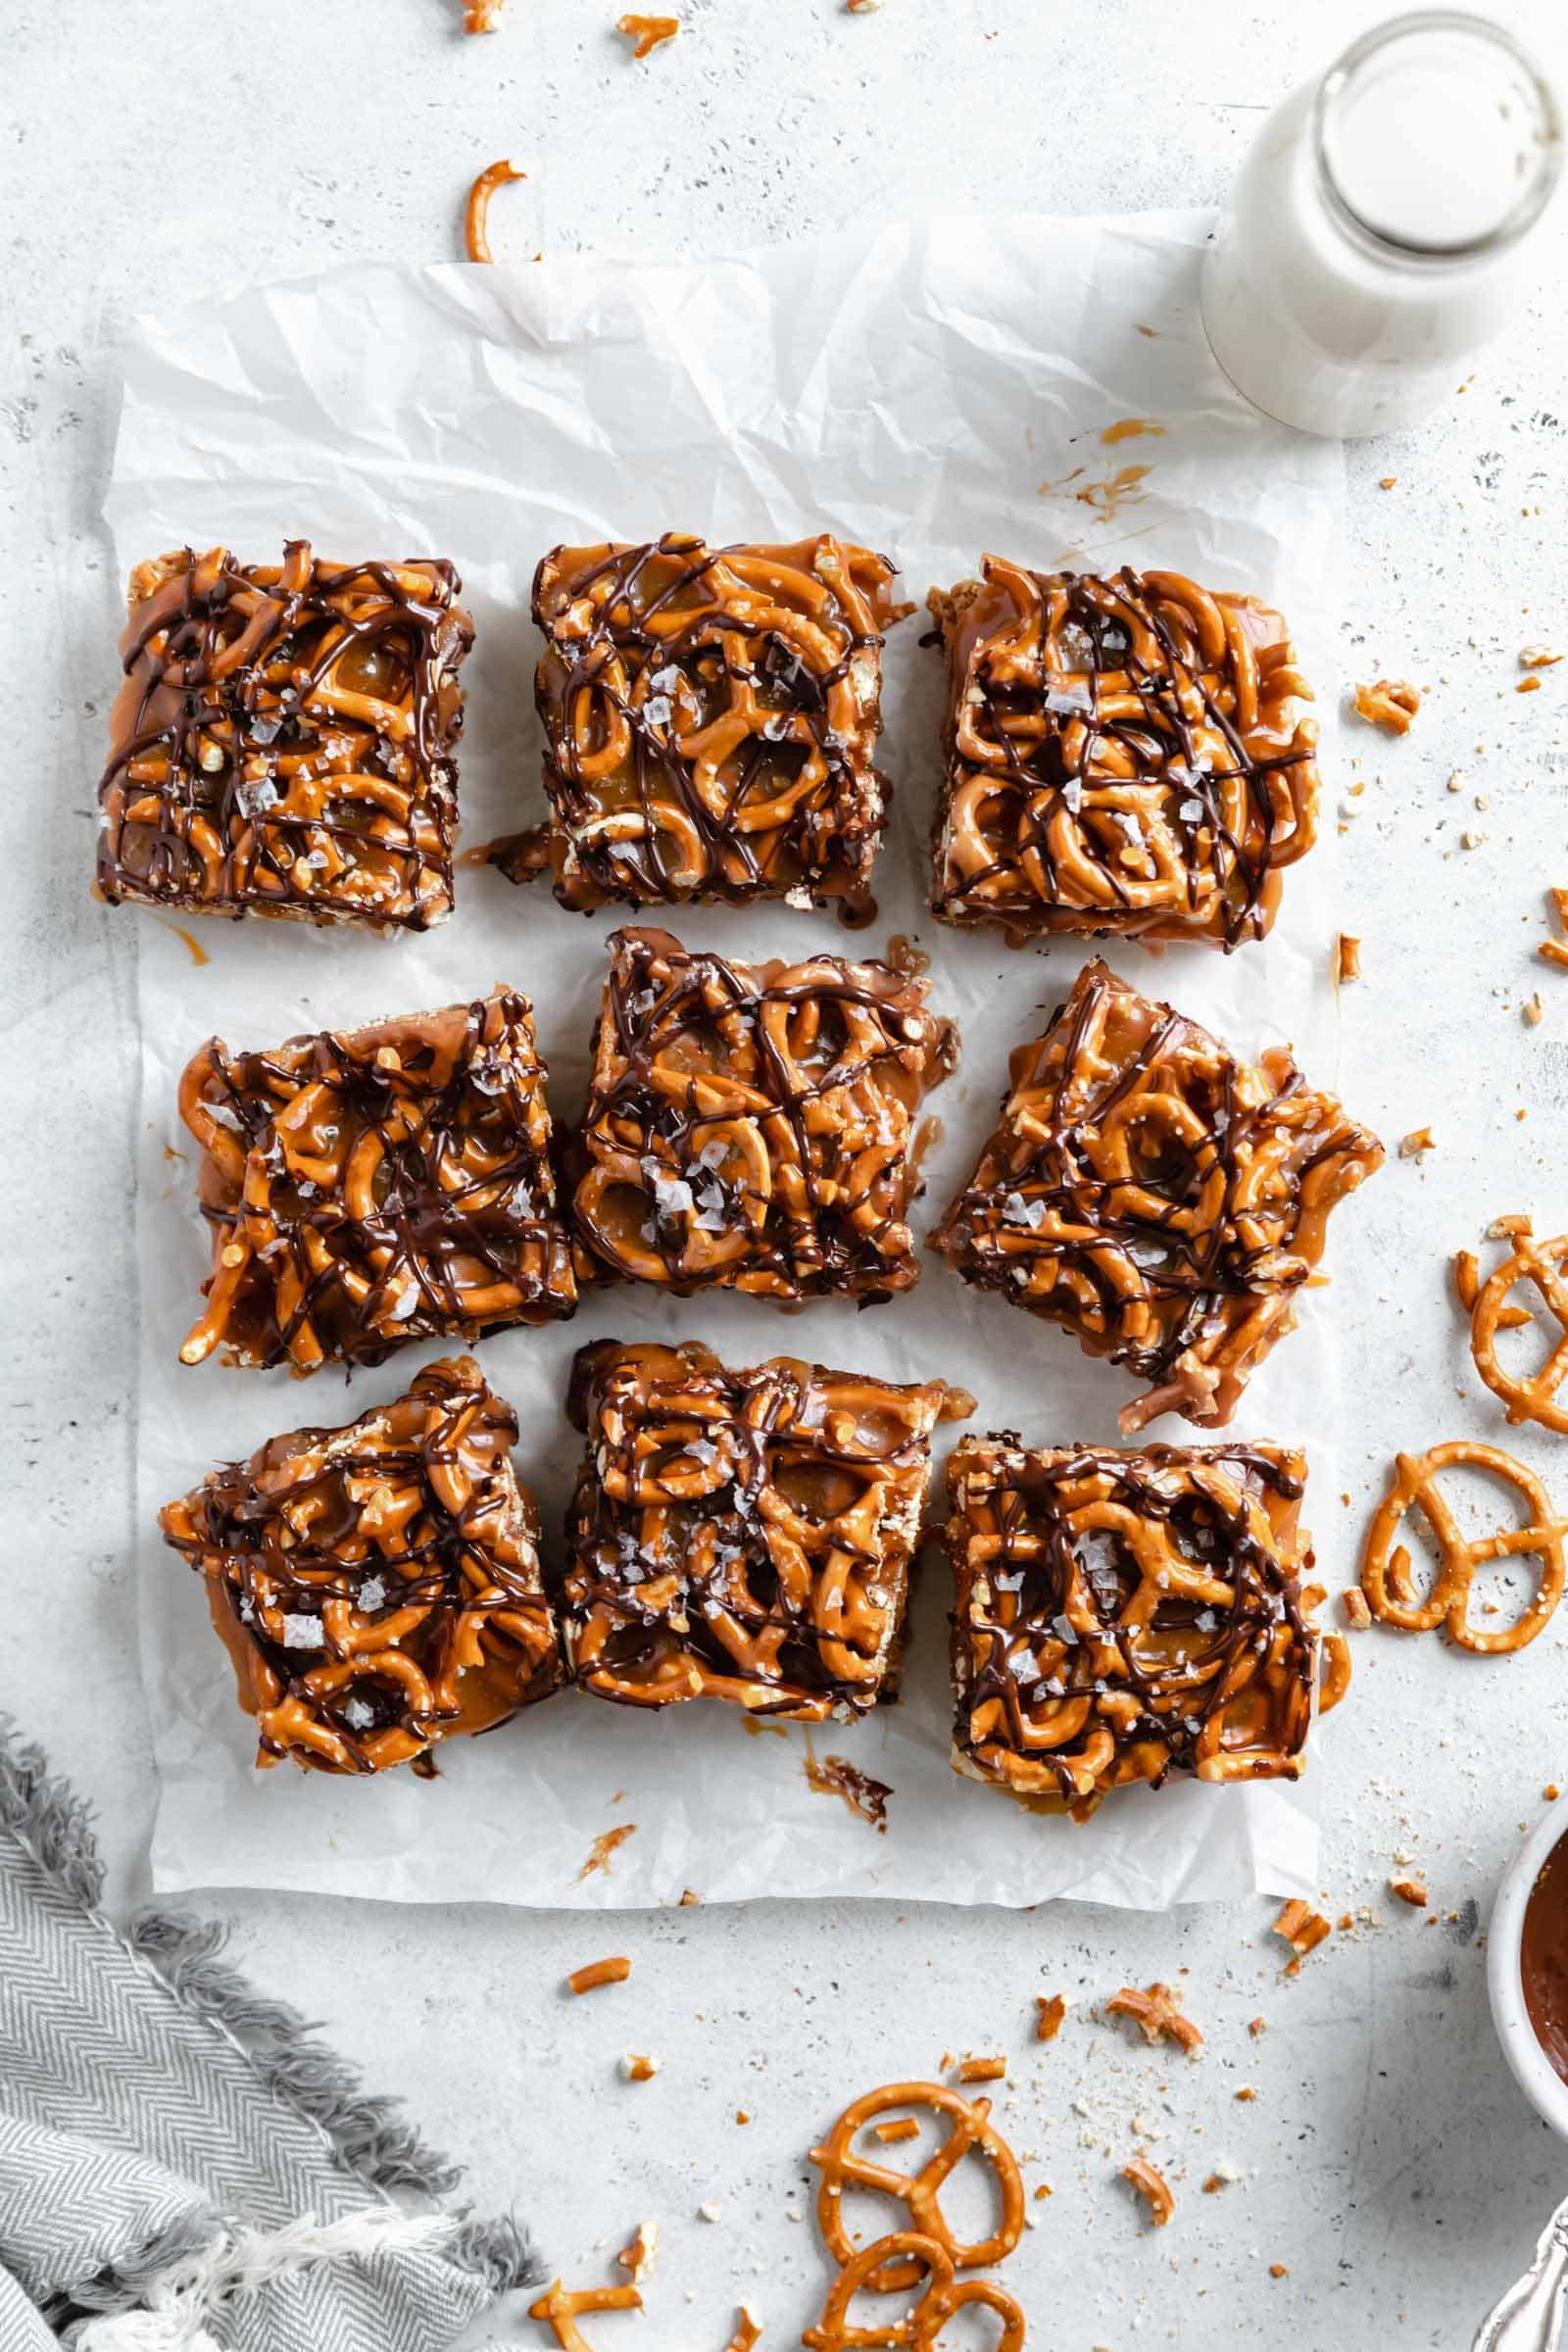 peanut butter pretzels no bake bars drizzled with caramel and chocolate